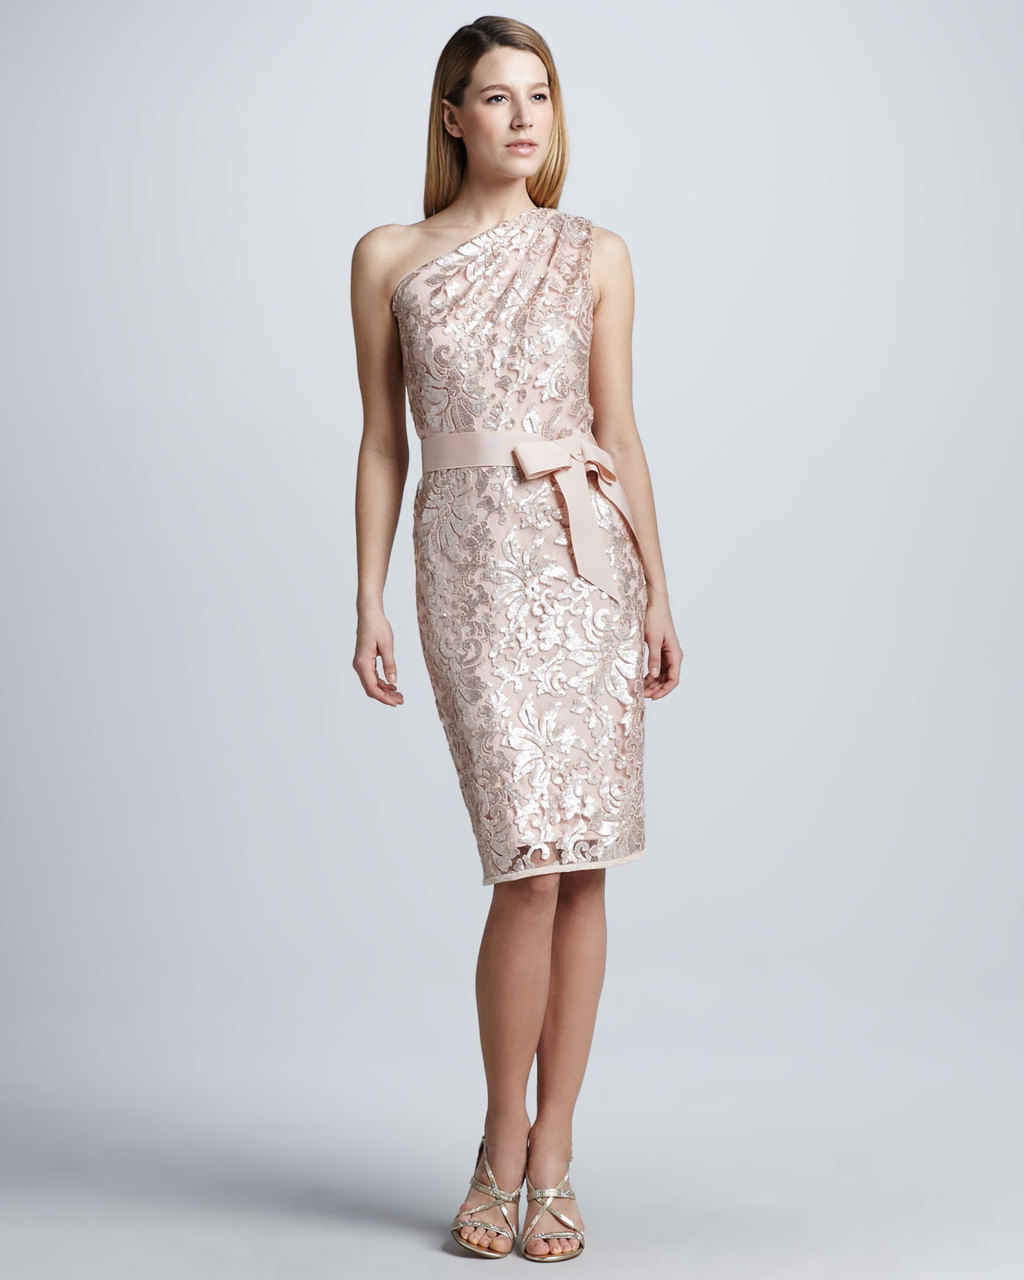 Blush Pink MOB dress with crushed velvet embroidery